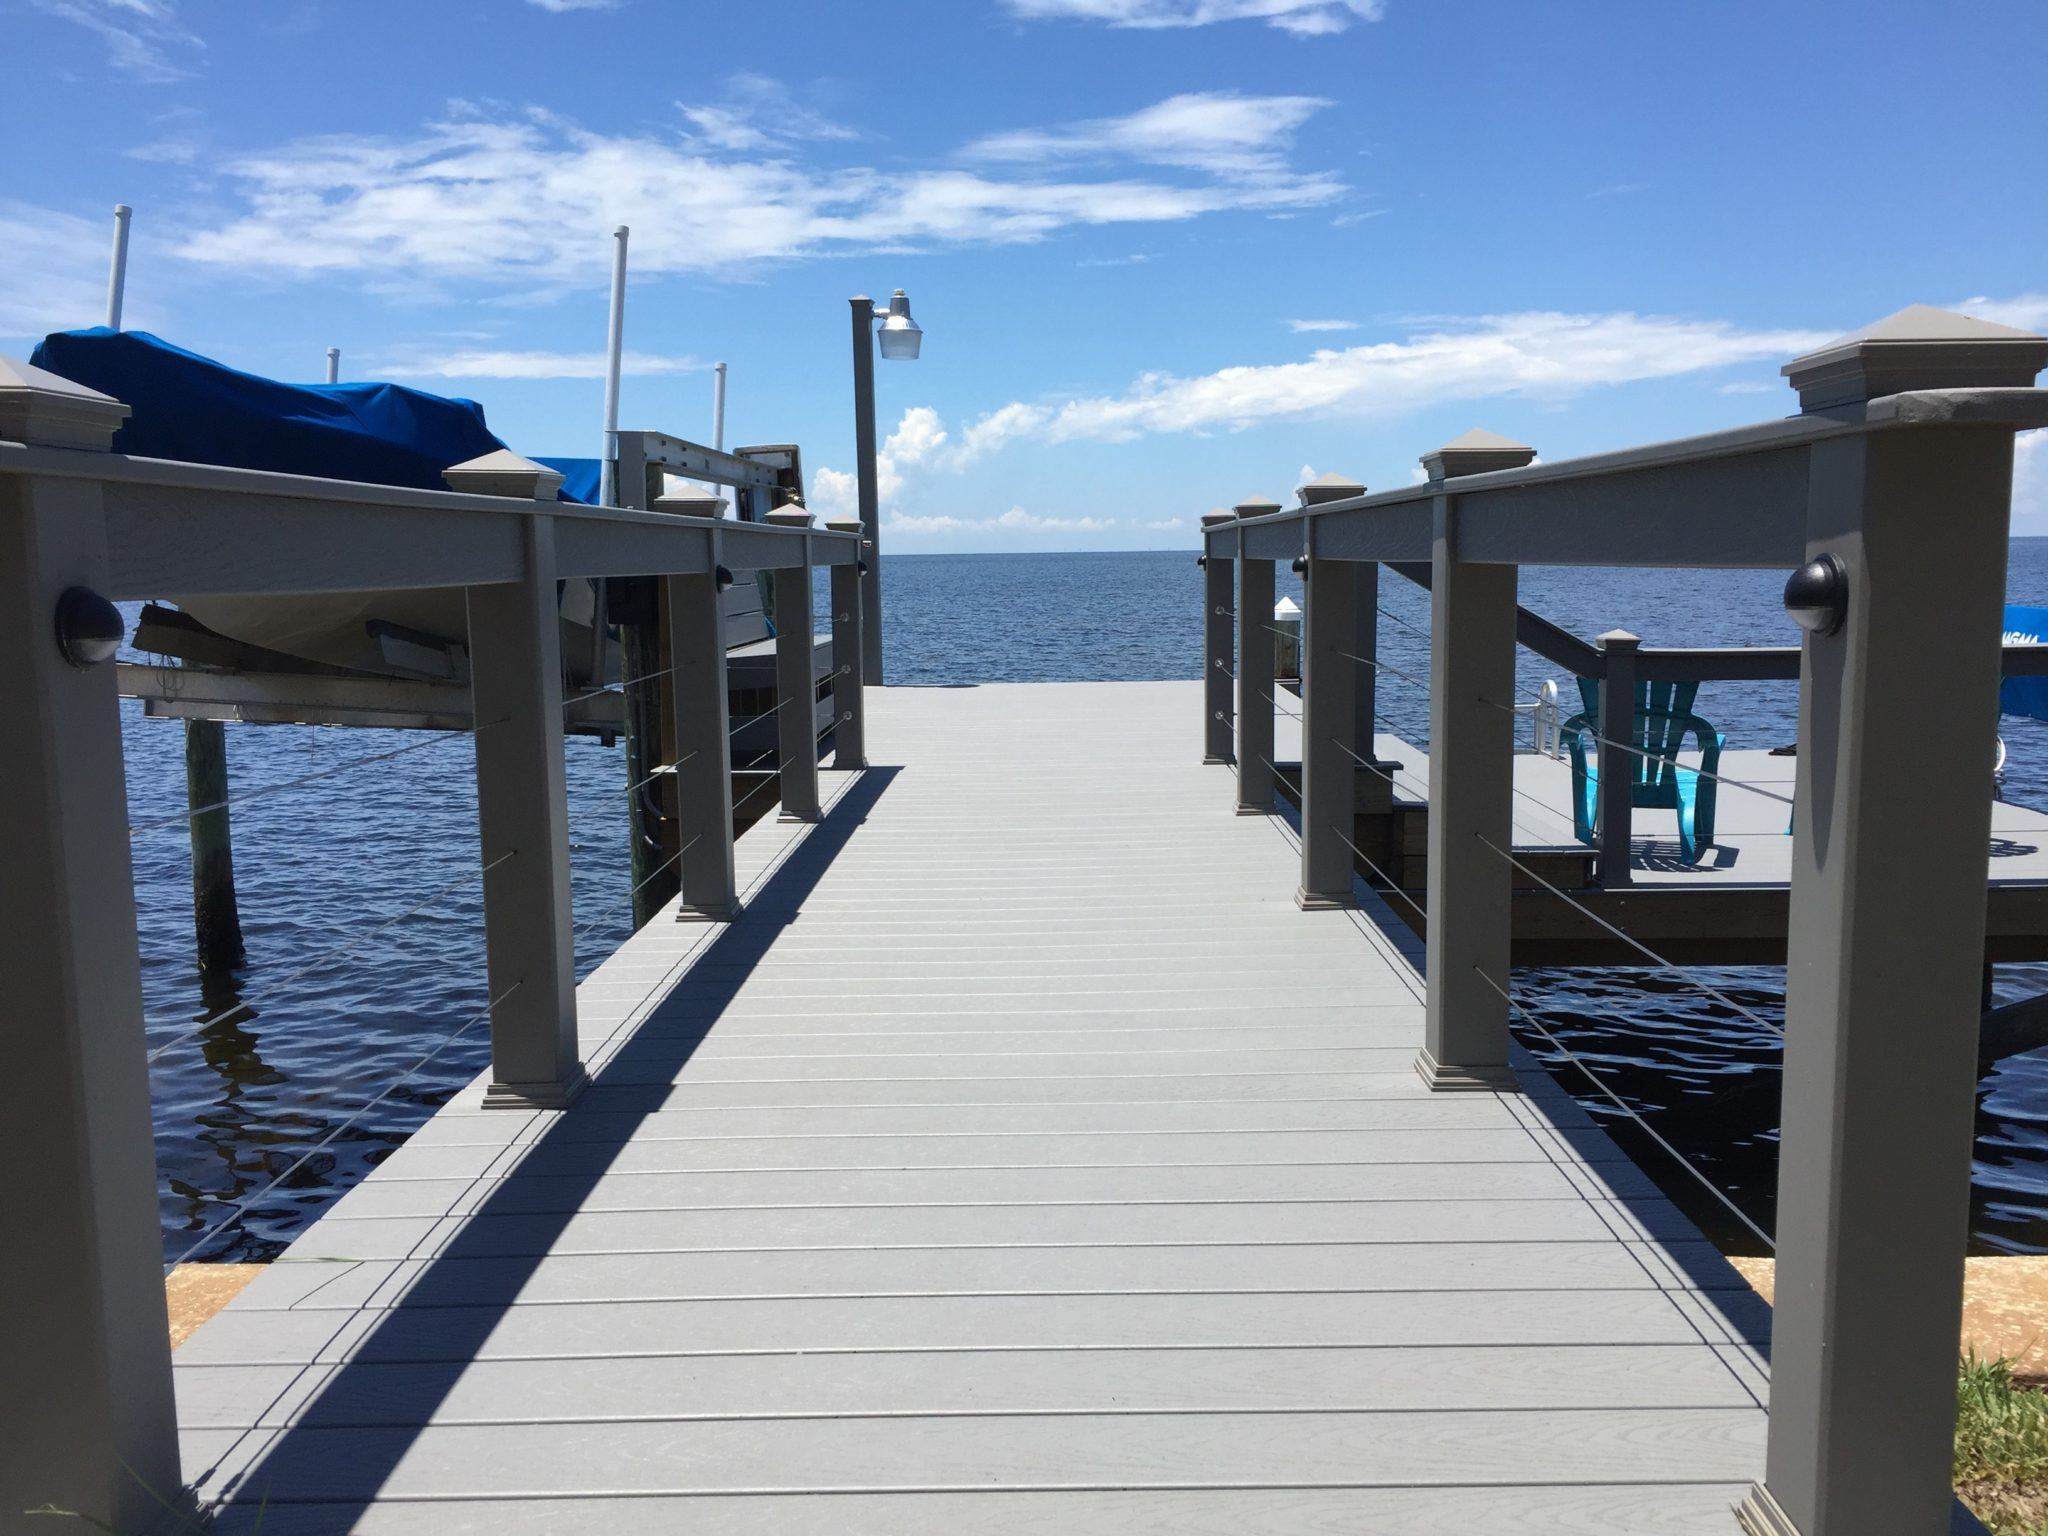 Composite Trex hand railing with stainless steel cables on a stationary dock on the water